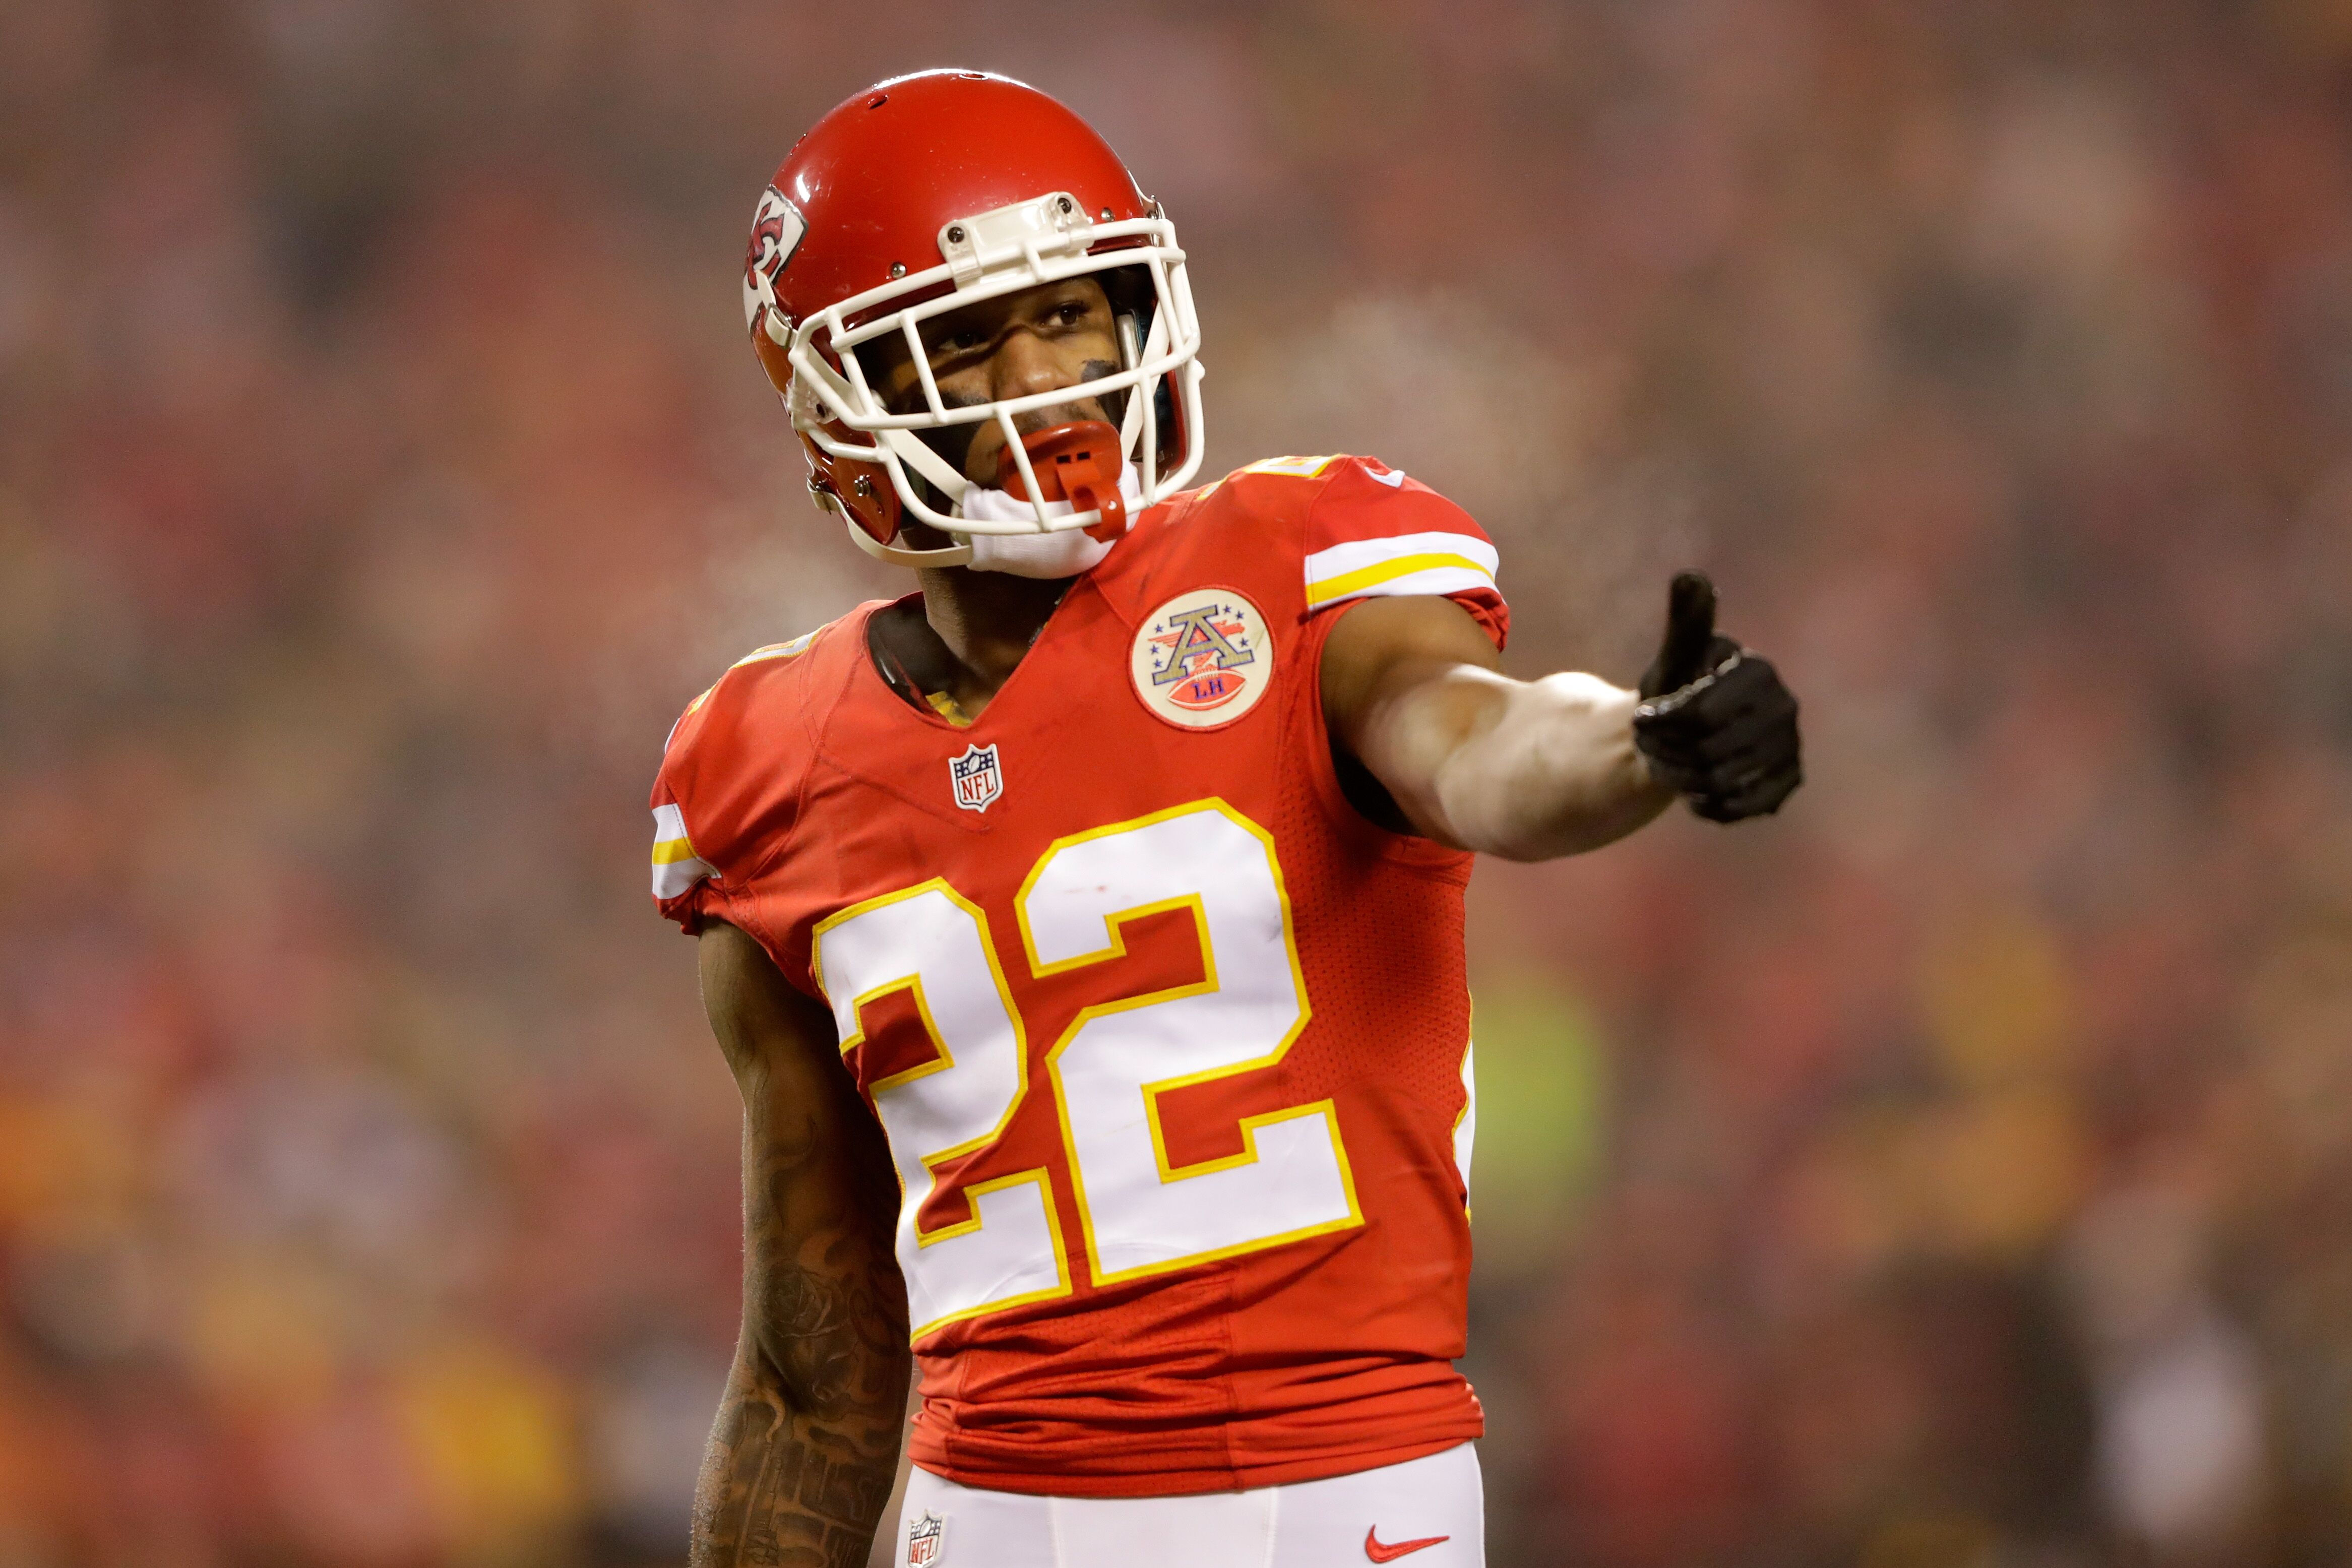 631778234-divisional-round-pittsburgh-steelers-v-kansas-city-chiefs.jpg